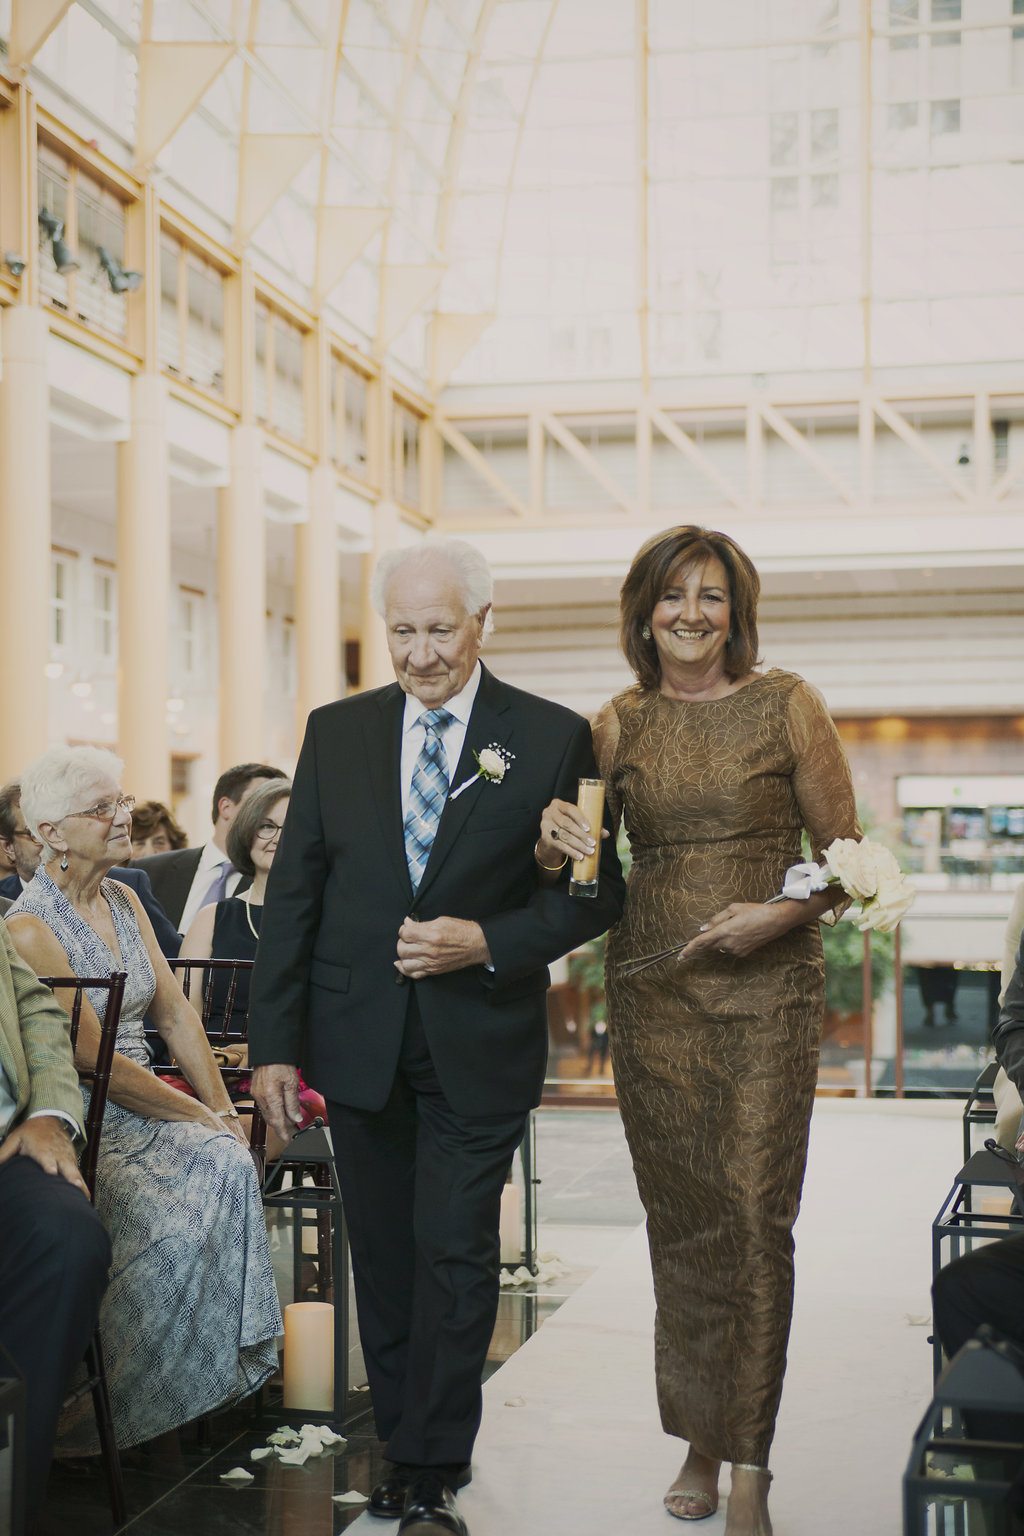 Proud mother of the bride being escorted down the aisle by the bride's grandfather.